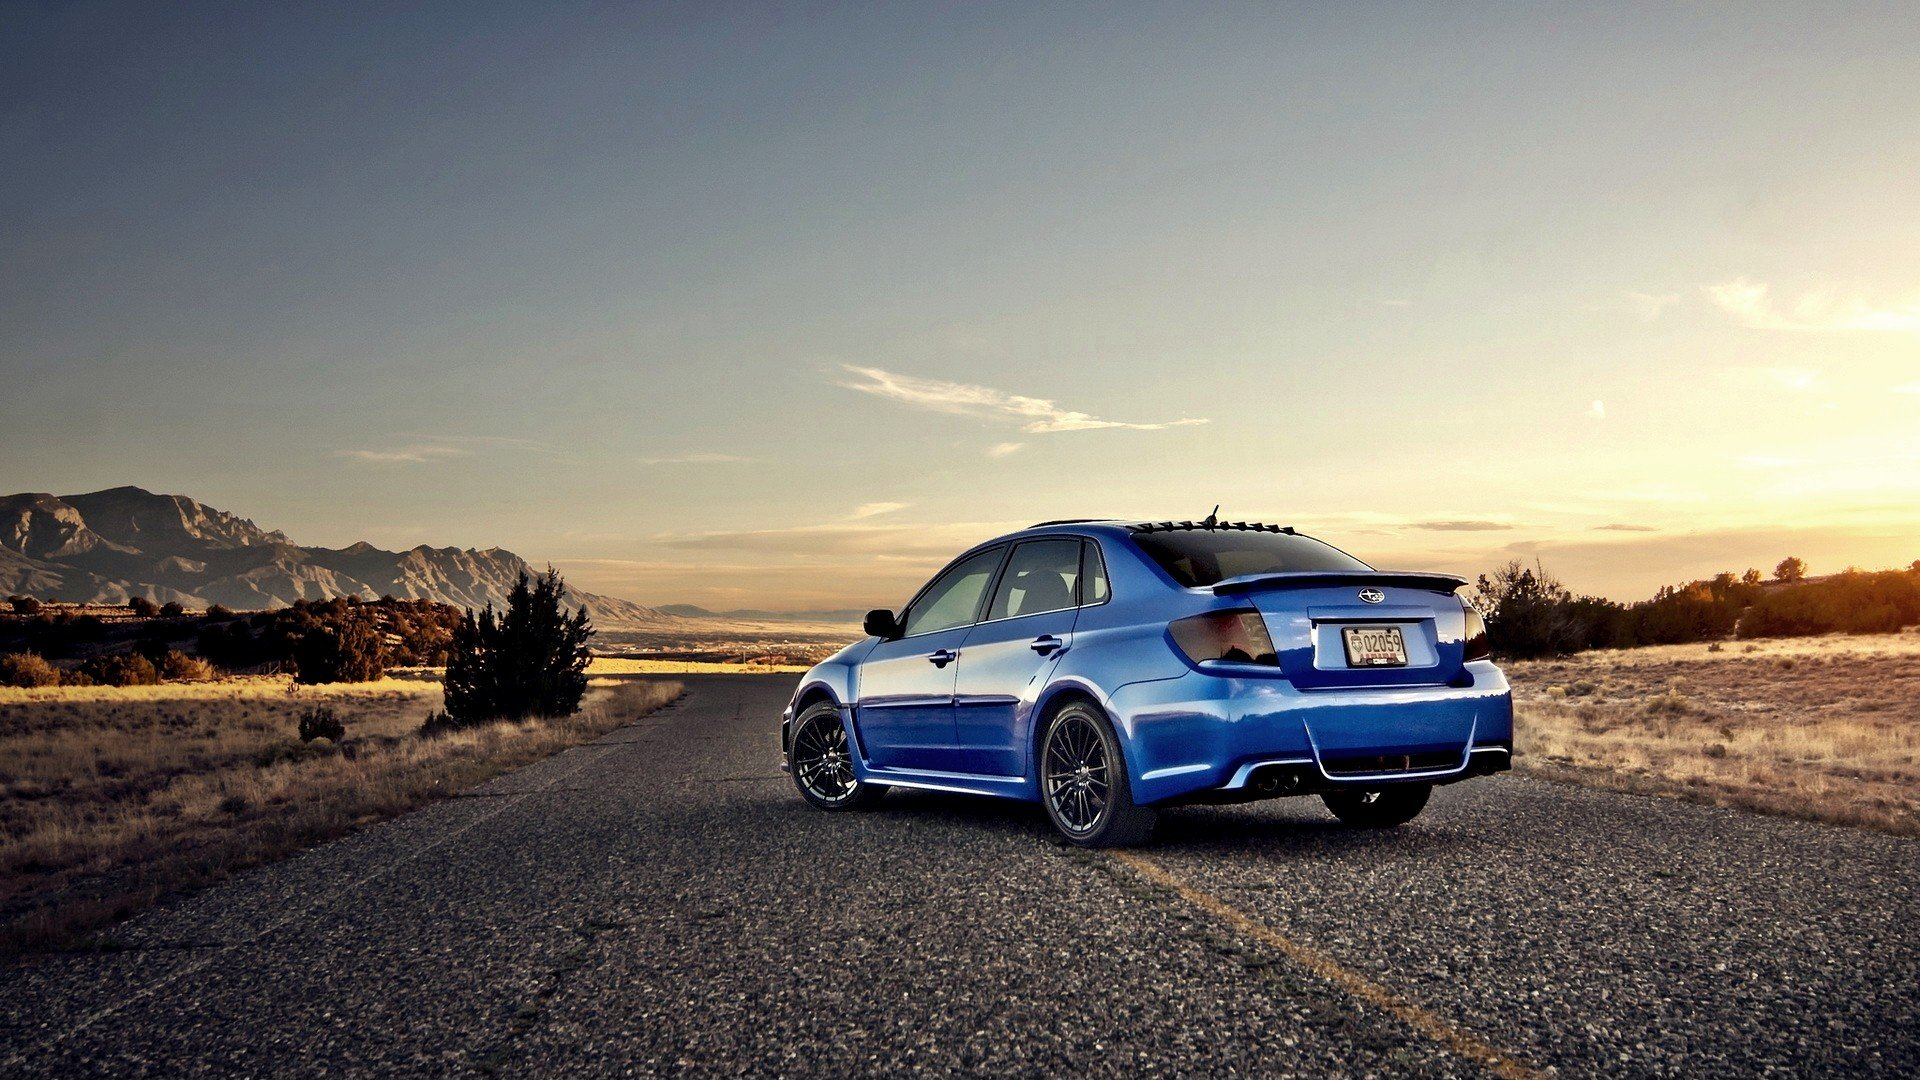 subaru impreza wrx sti wallpaper wallpapersafari. Black Bedroom Furniture Sets. Home Design Ideas